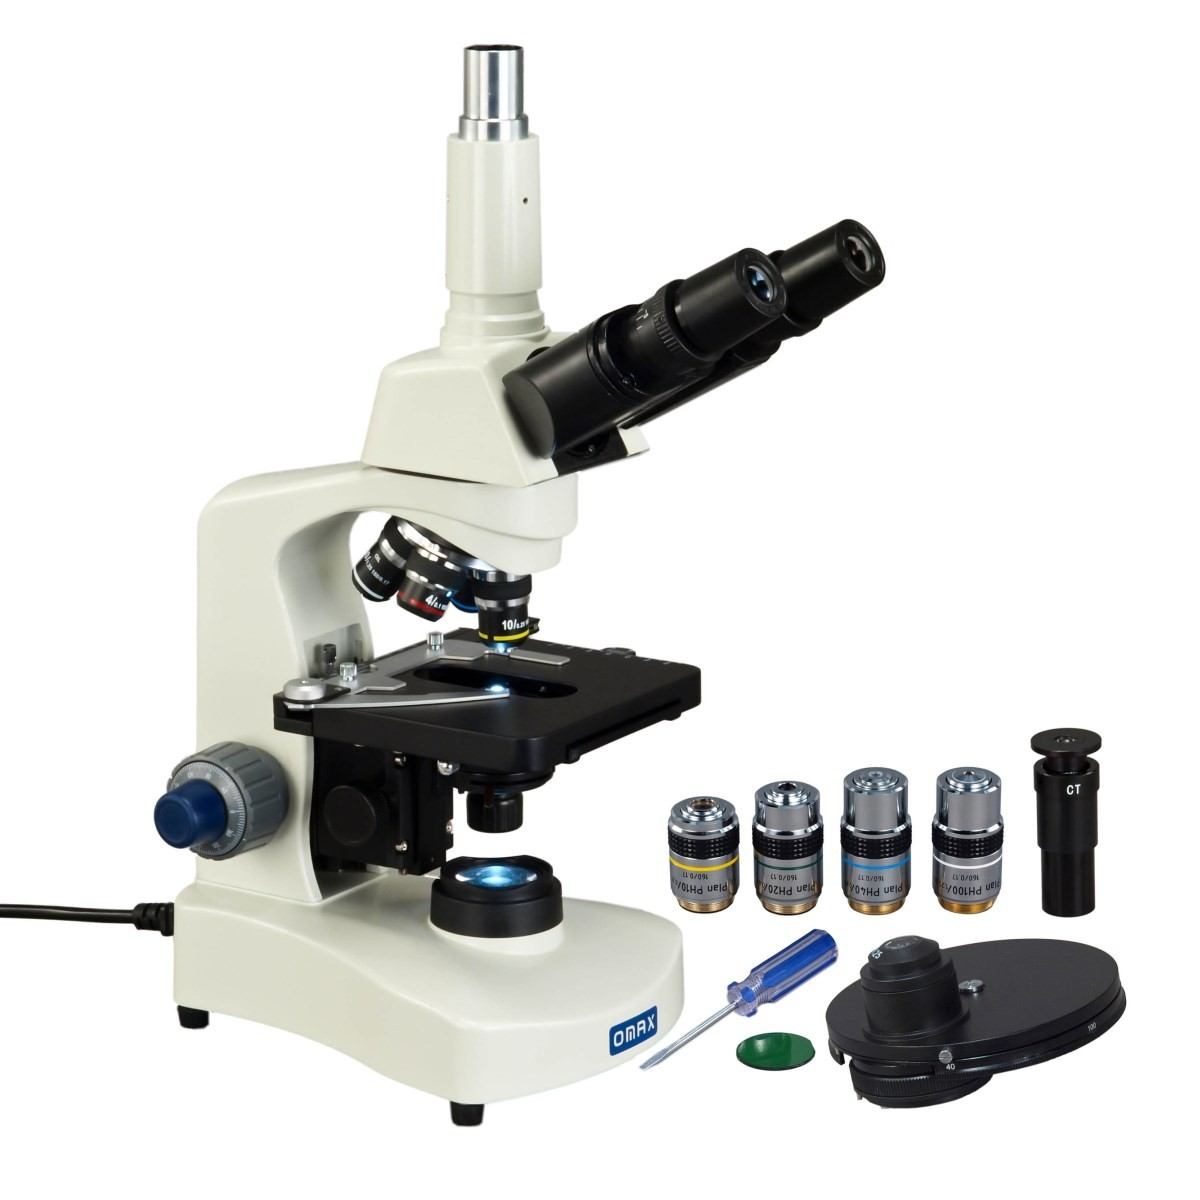 40X-2000X Phase Contrast Trinocular Compoud LED Siedentopf Microscope+PLAN Objectives